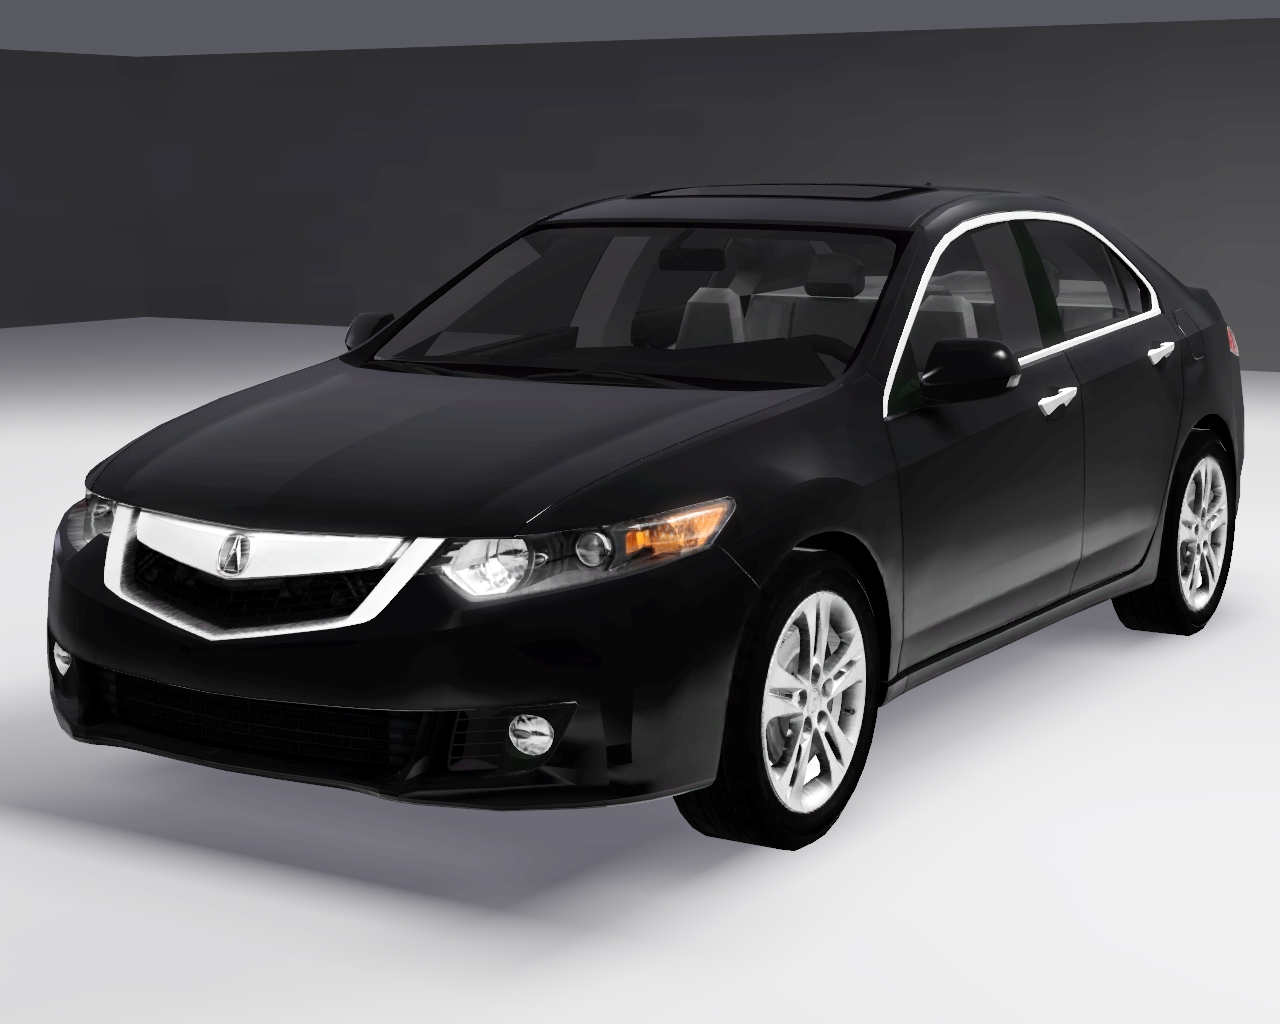 2010 Acura TSX by Fresh-Prince